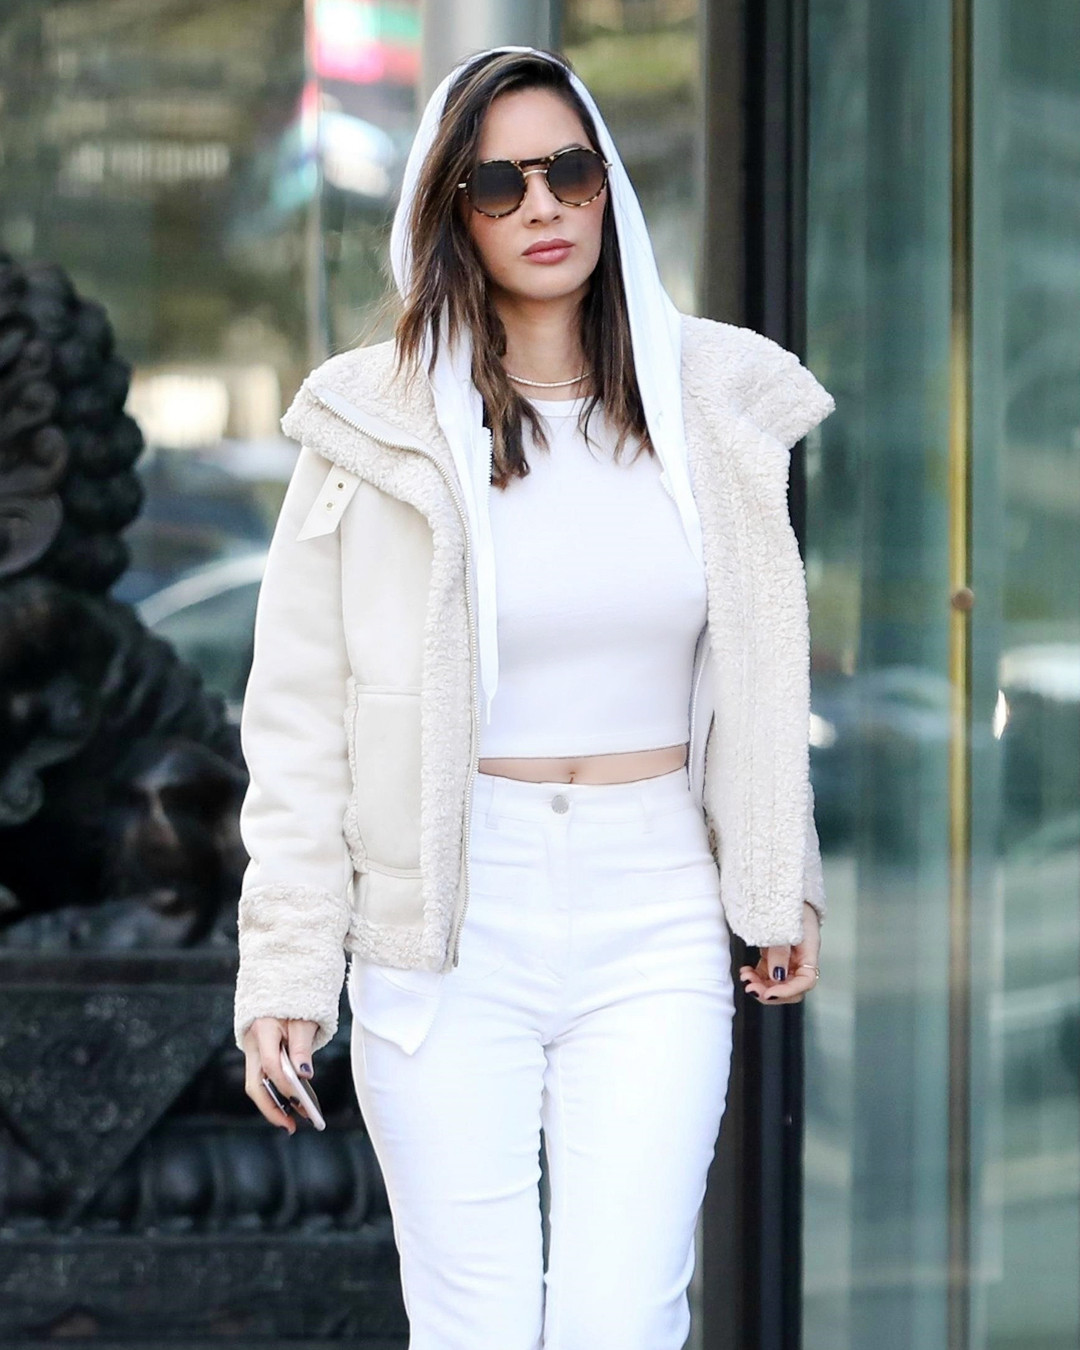 Saturday Savings: Olivia Munn's Shearling Jacket Is Now Only $50!